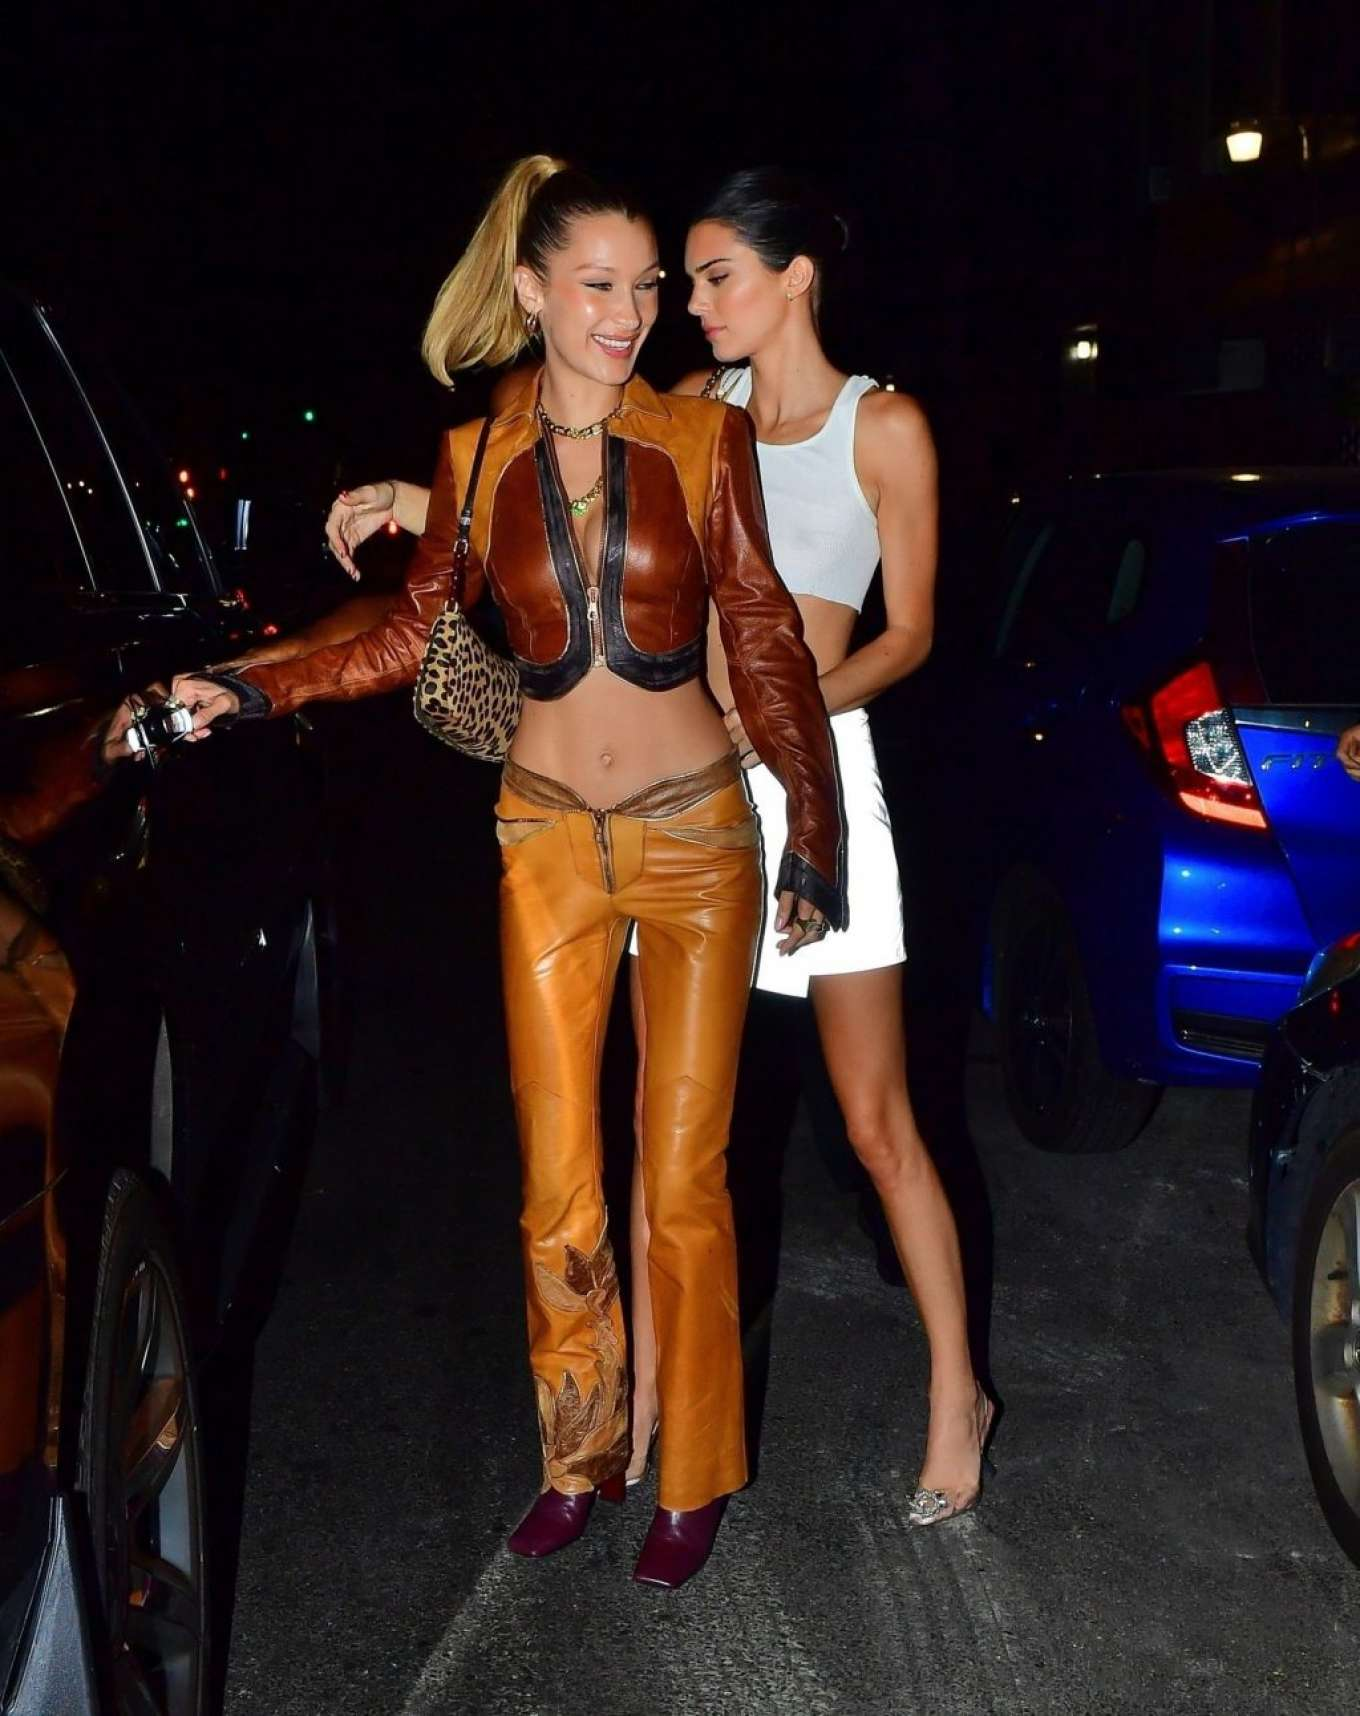 Kendall Jenner 2019 : Bella Hadid and Kendall Jenner at Avenue nightclub-14